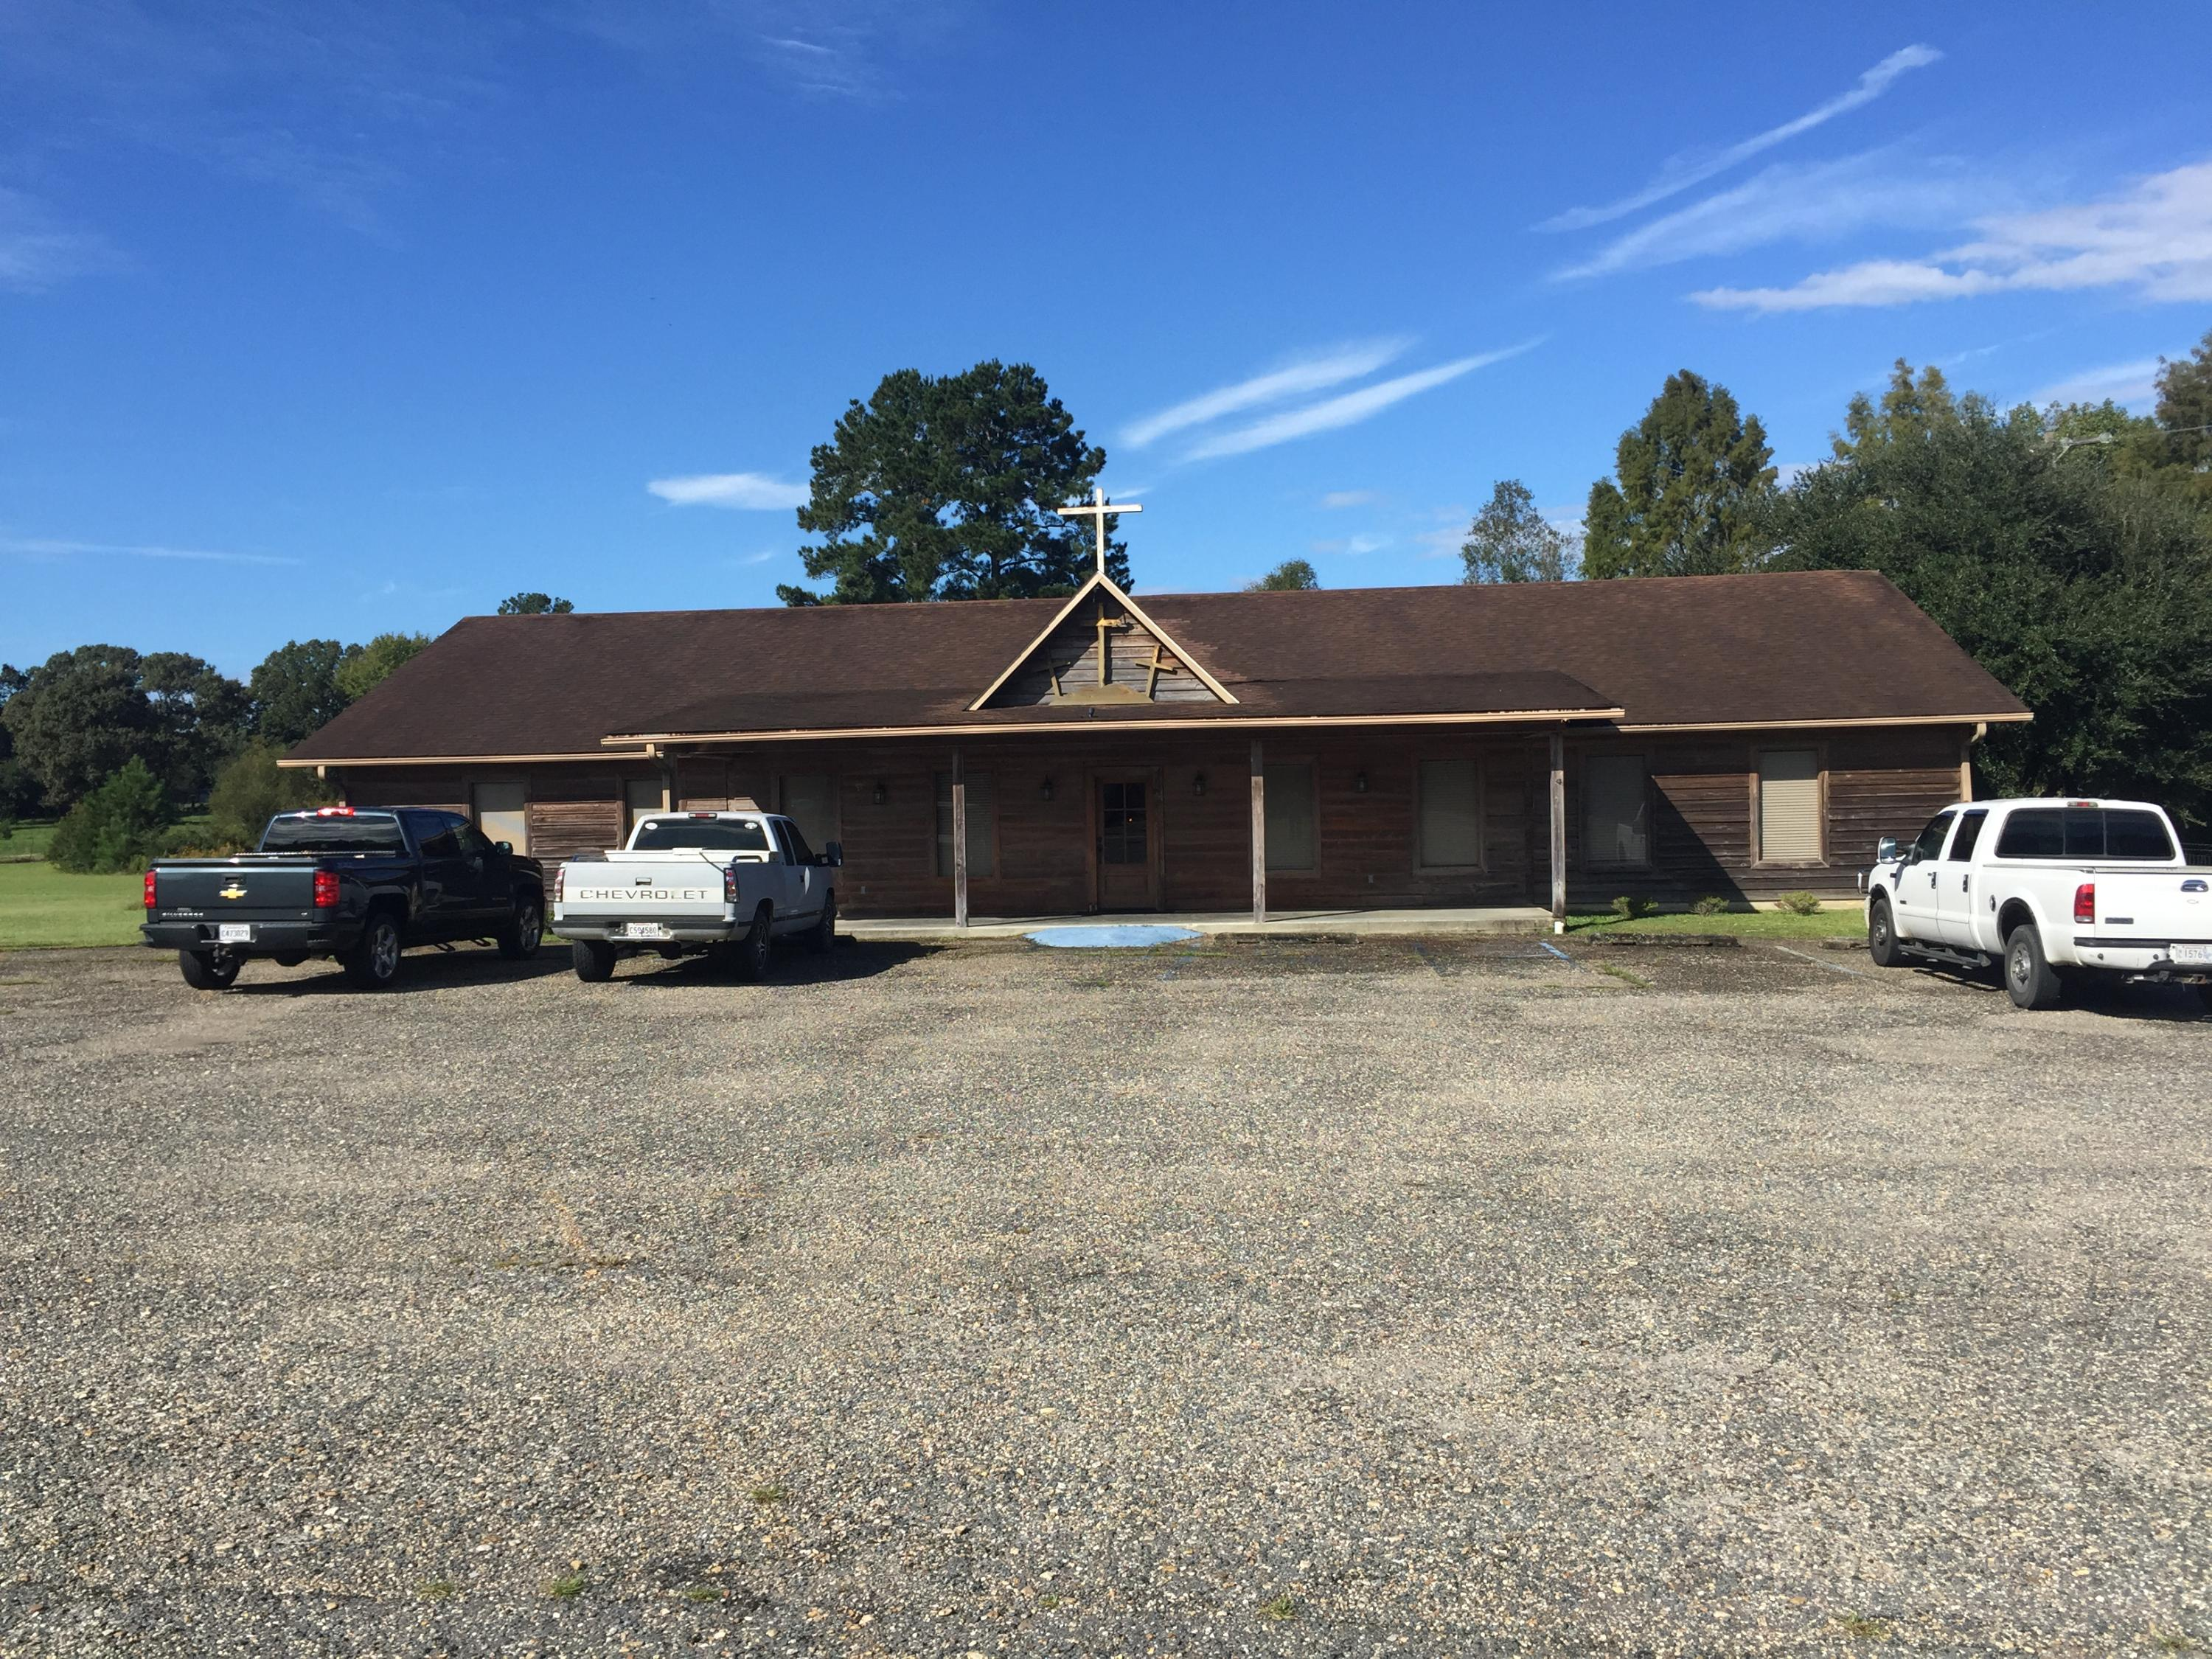 DeRidder commercial property for sale, 2790 HWY 3226, DeRidder LA - $210,000